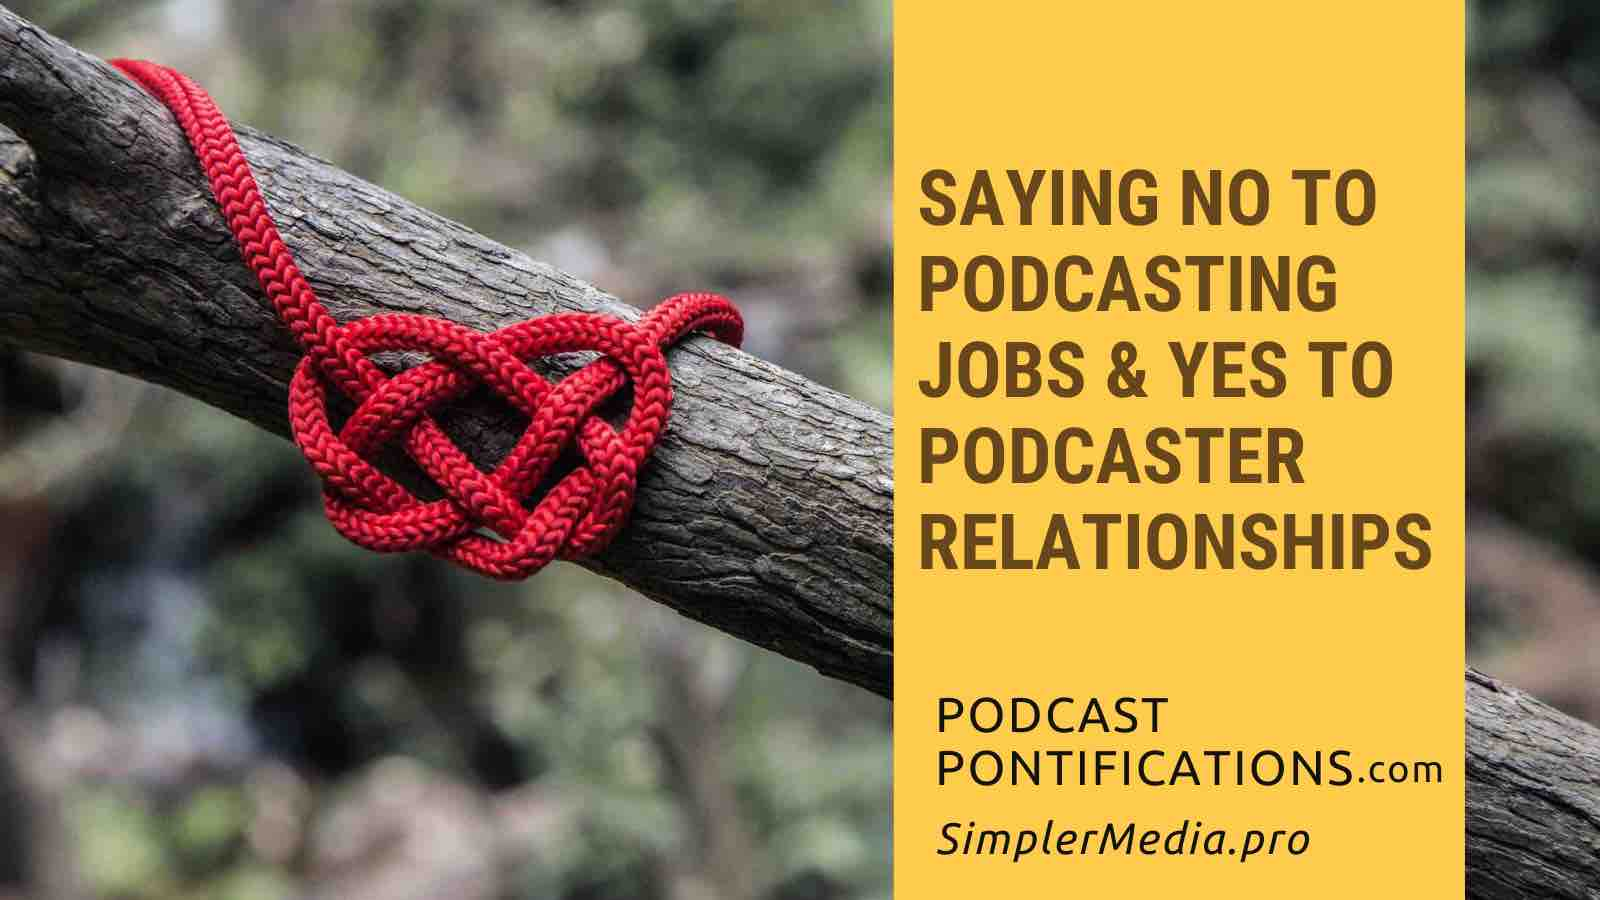 Saying No To Podcasting Jobs & Yes To Podcaster Relationships